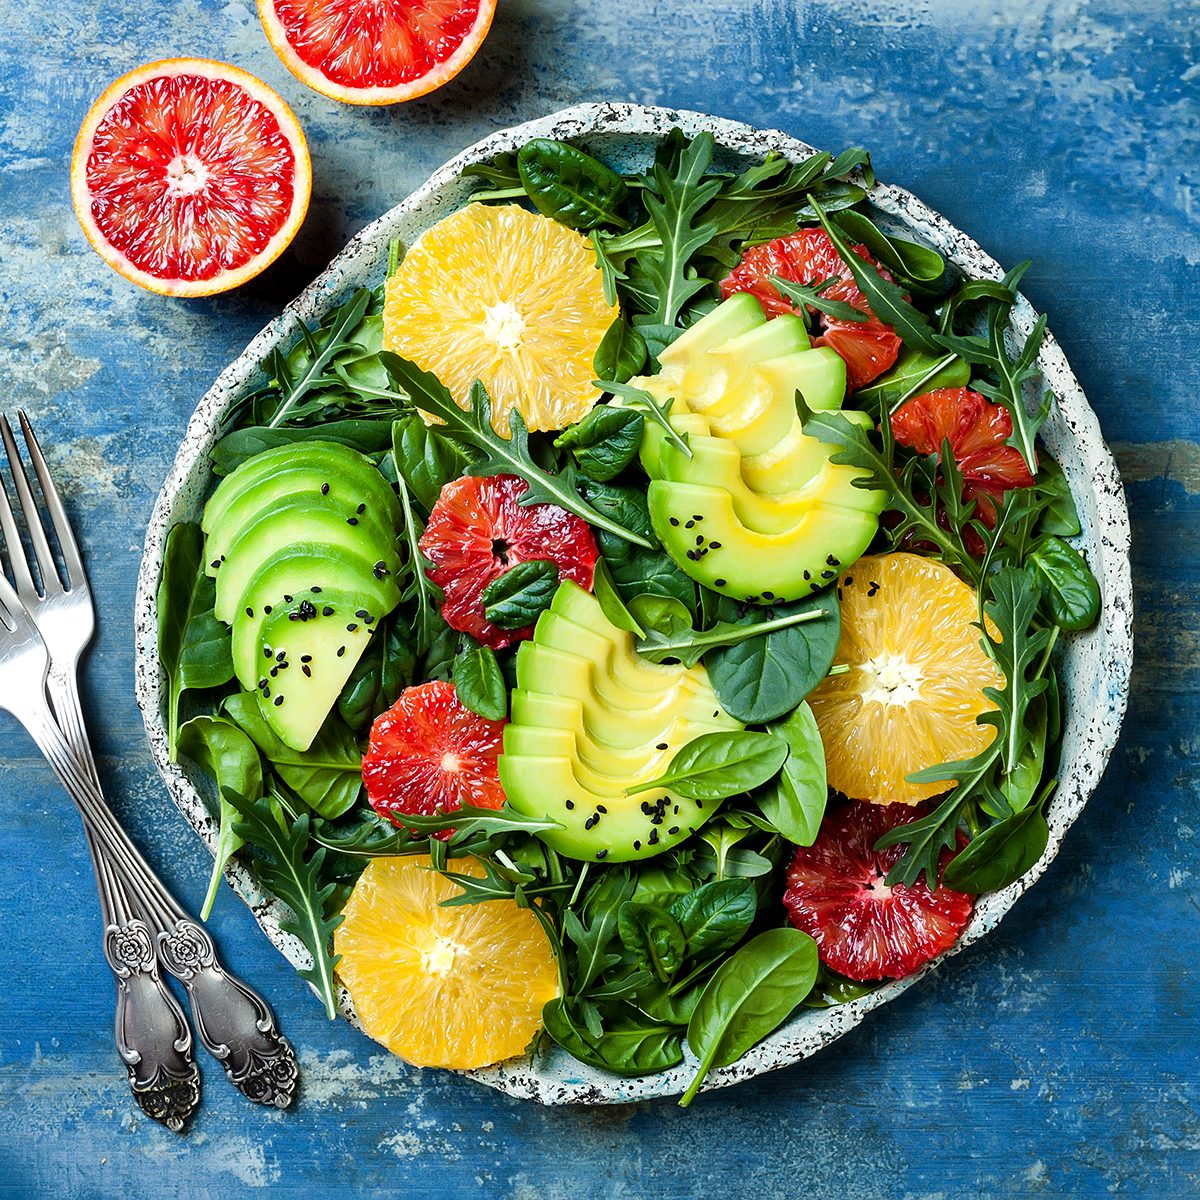 Citrus salad with mixed greens and blood orange. Vegan, vegetarian, clean eating, dieting, food concept. Blue stone background.